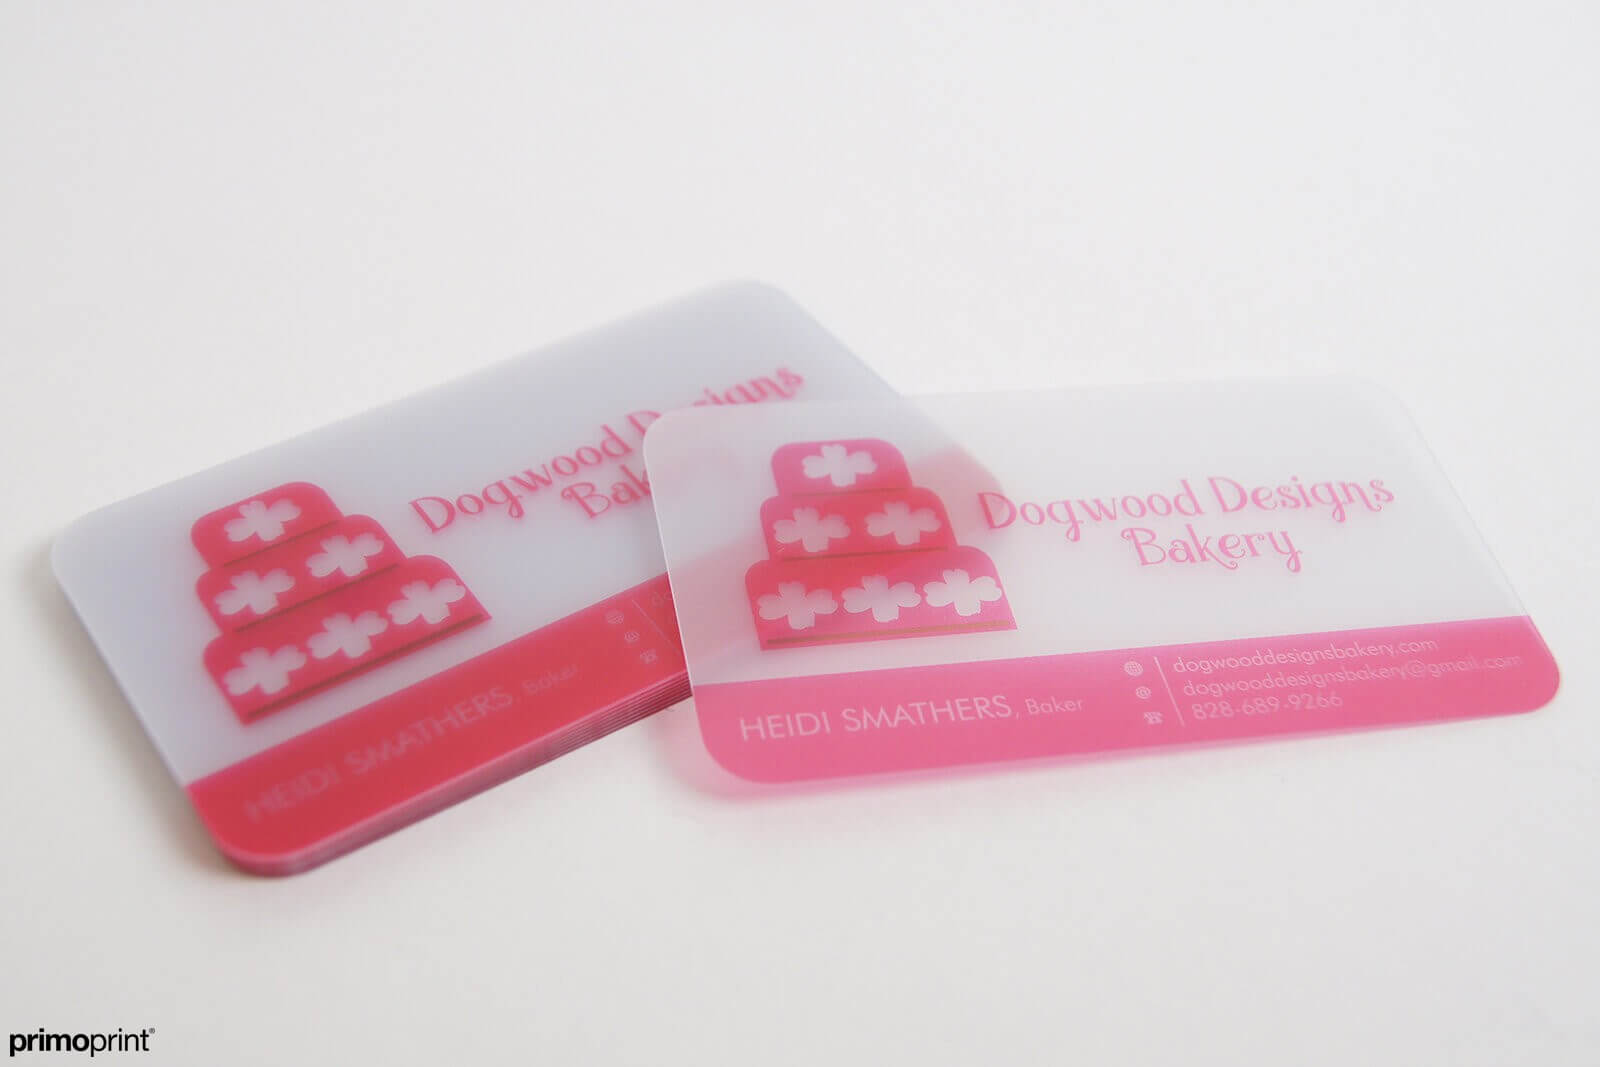 20PT Frosted plastic business card. All come with rounded corners and is printed in USA.